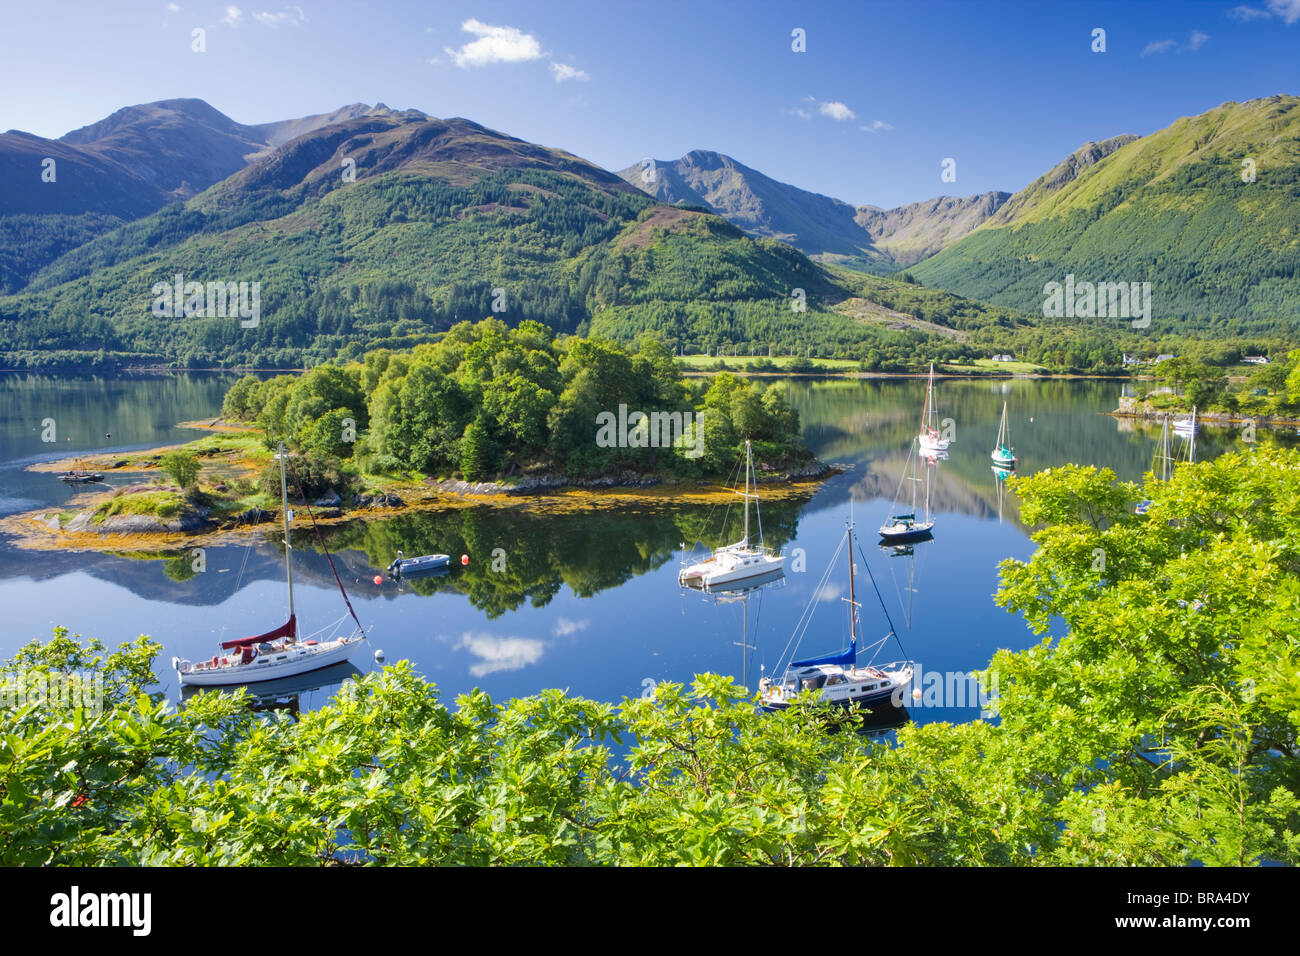 Bishops Bay, Loch Leven, Highland, Scotland, UK. - Stock Image